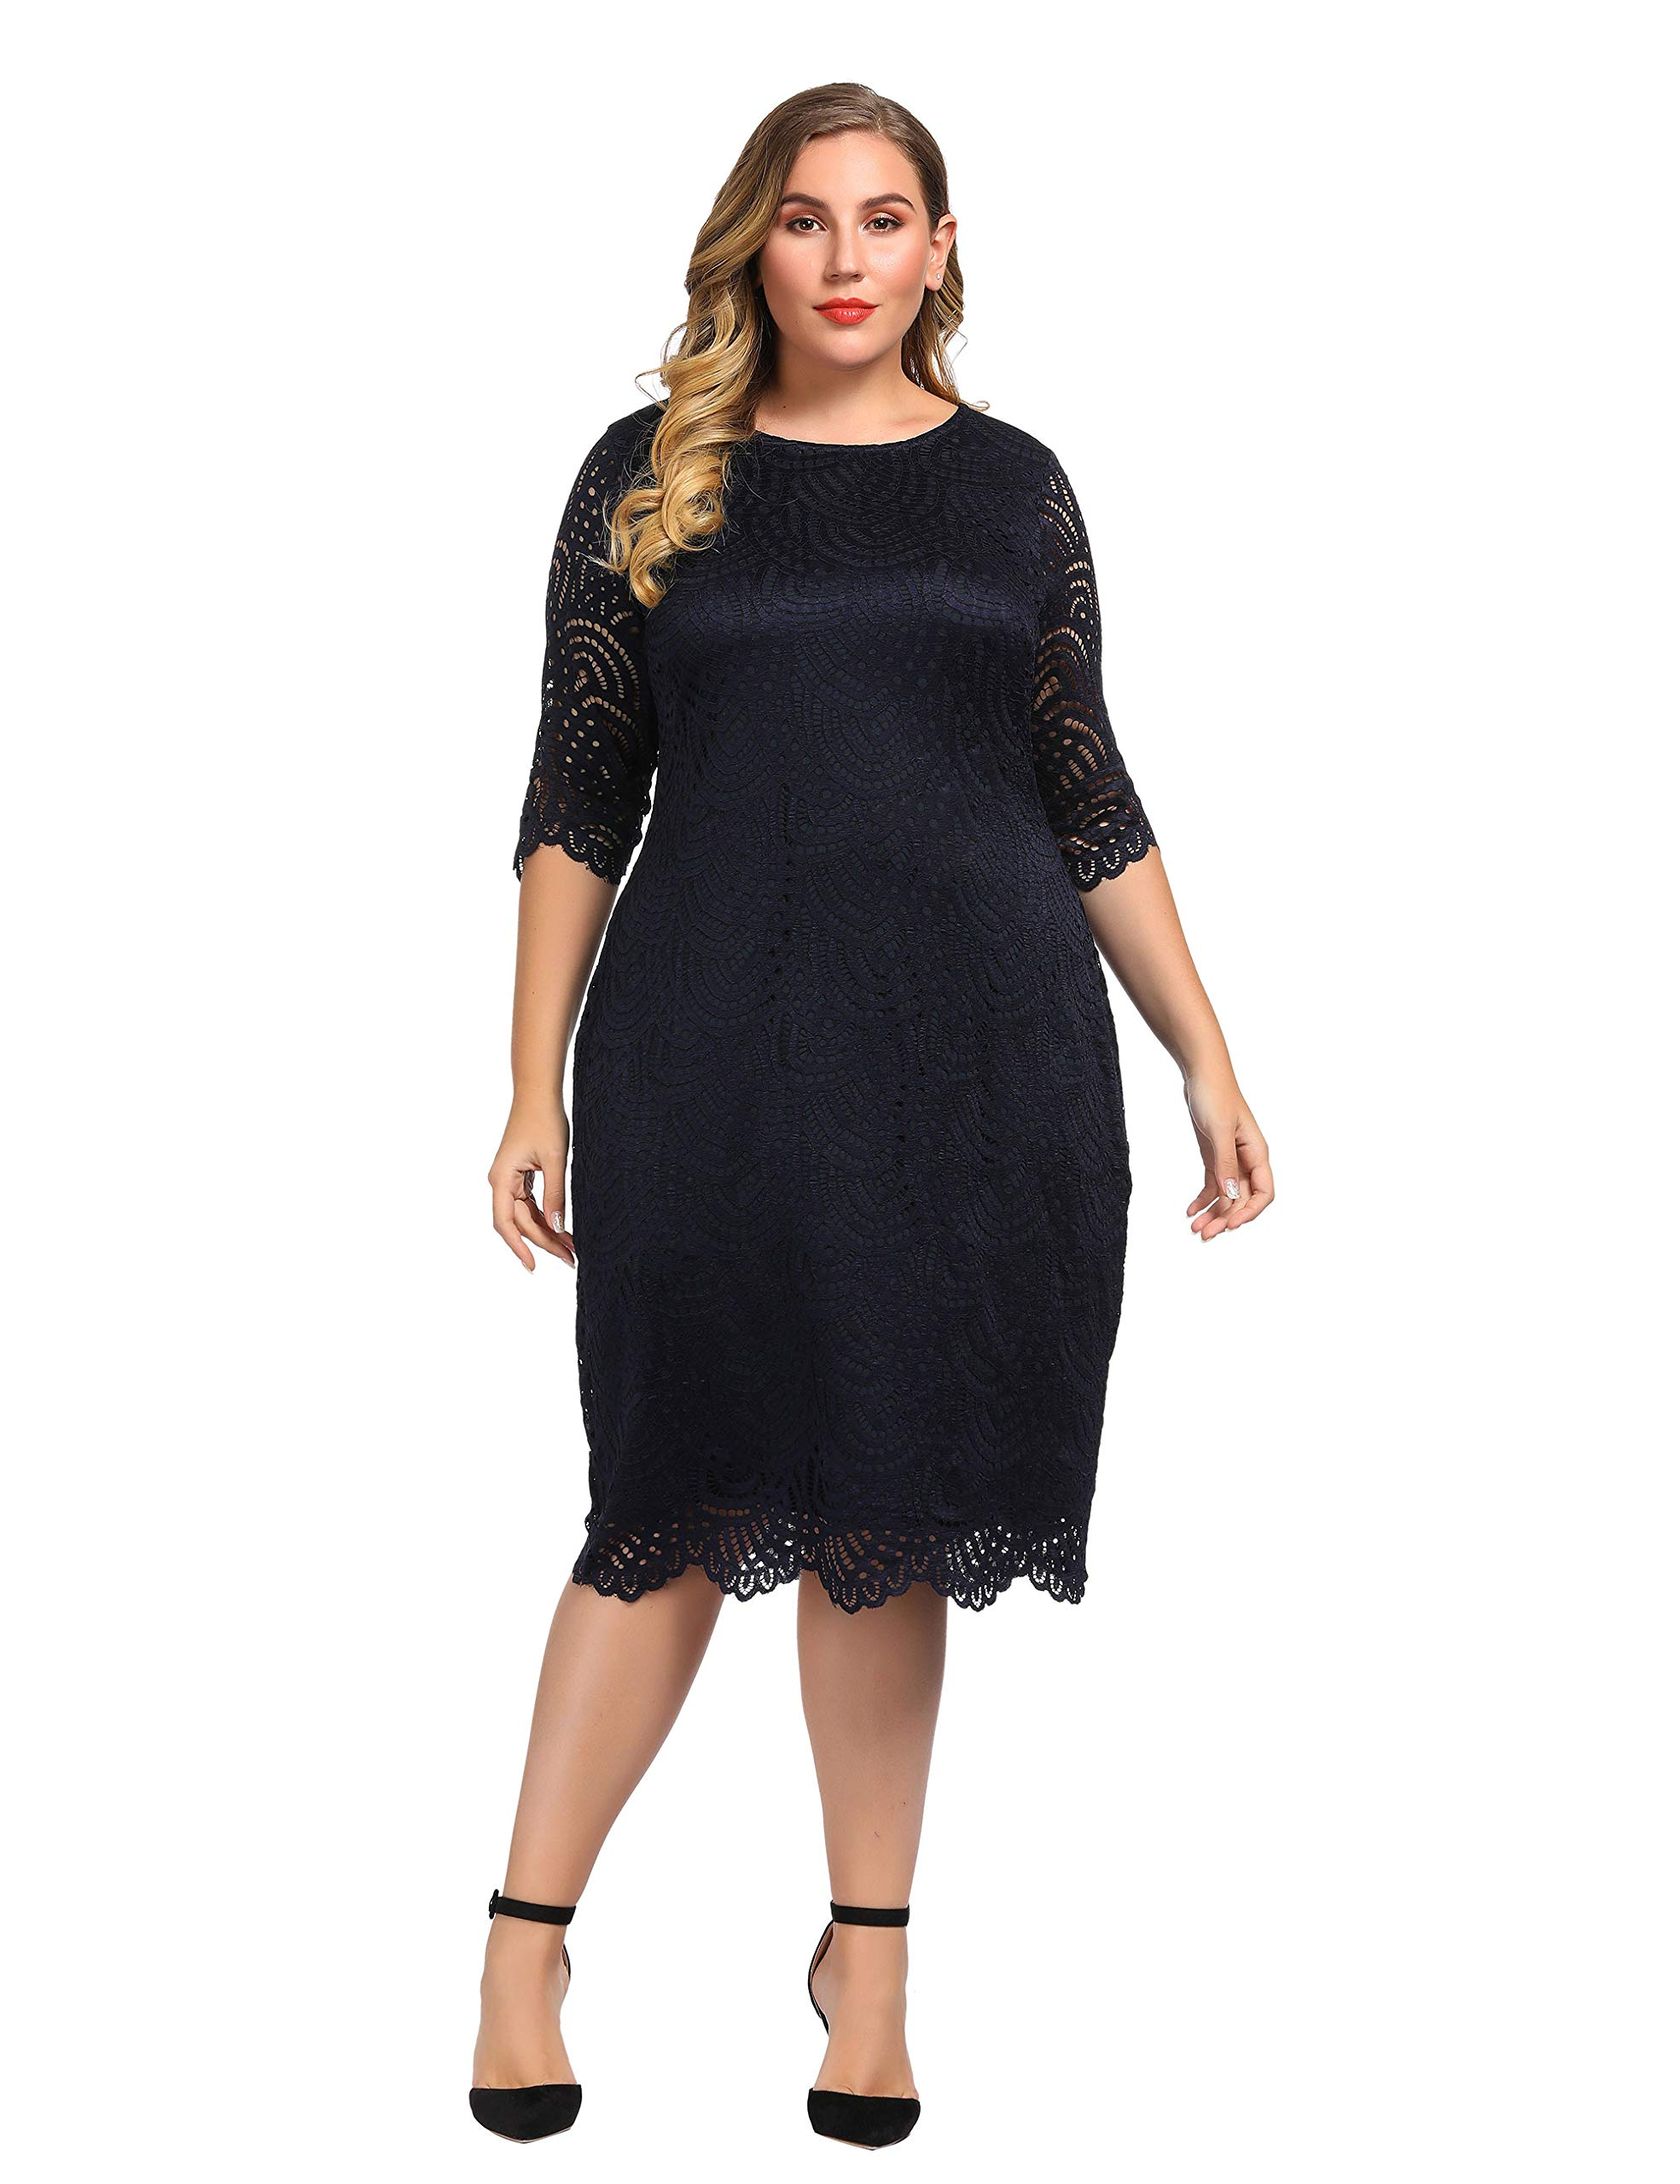 Plus Size Dresses - Women's Plus Size Solid V Neck Knee Length 3/4 Sleeve Hi Lo True Wrap Dress